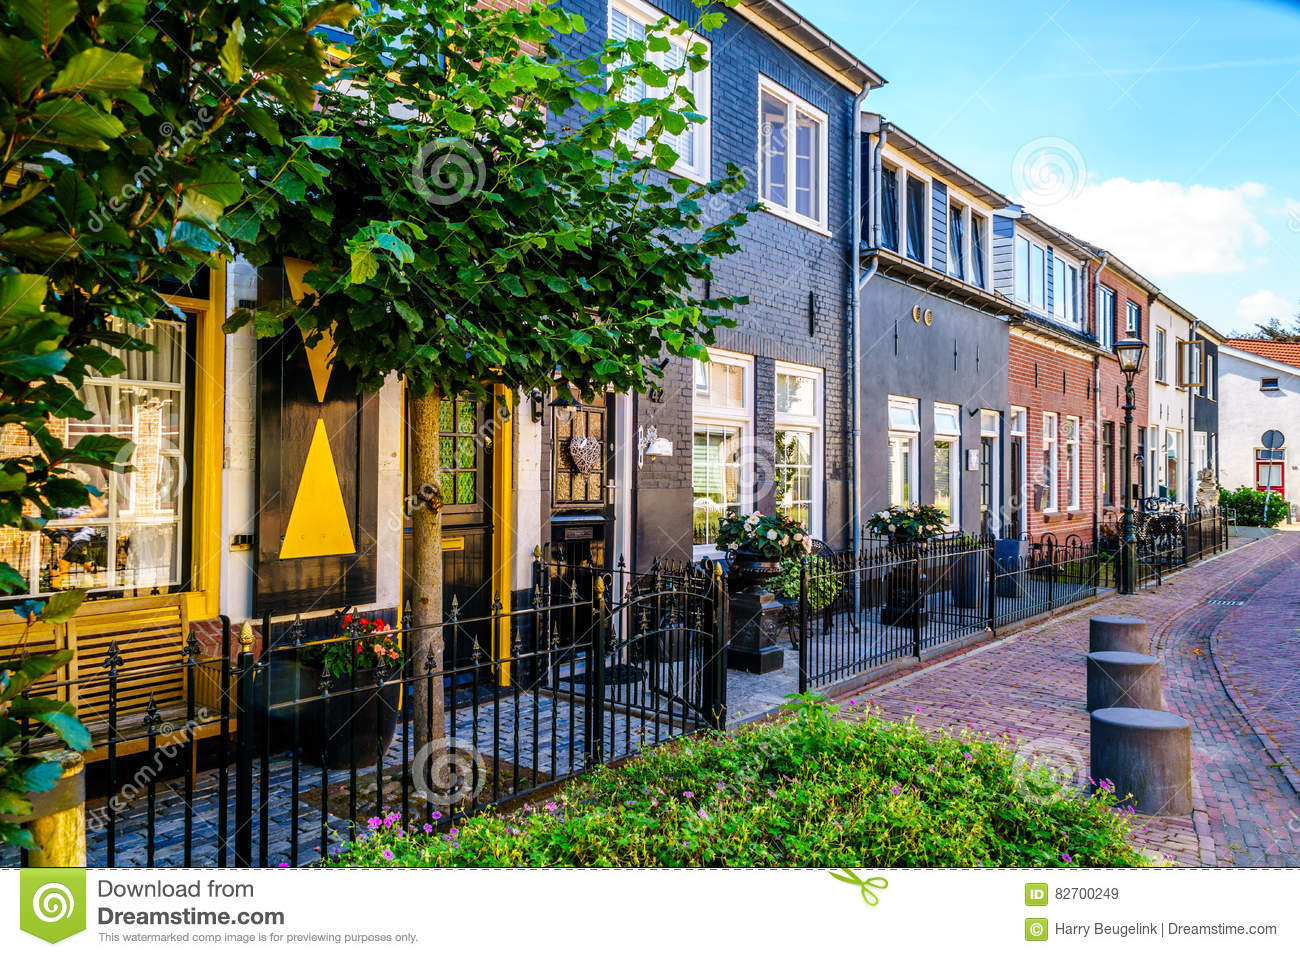 Quiet street in the historic Dutch Fishing Village of Bunschoten-Spakenburg with Renovated Row Houses